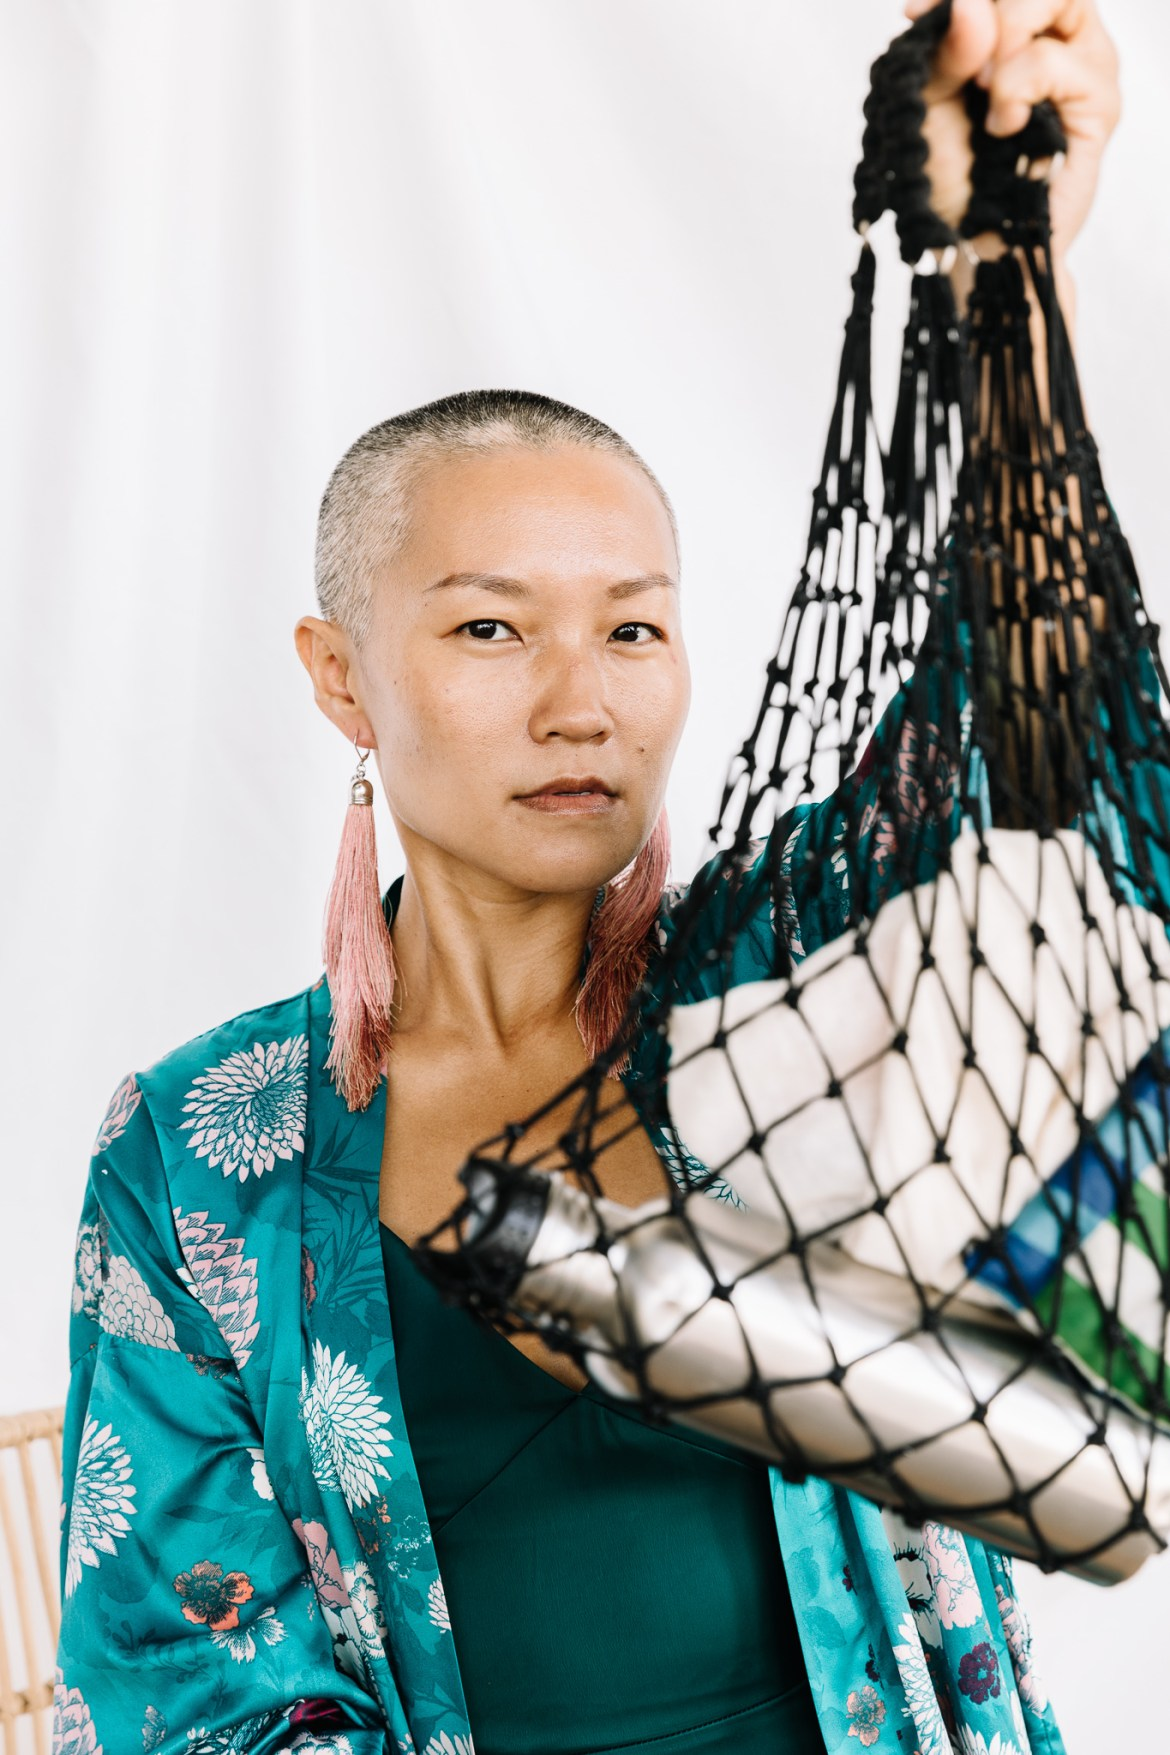 Jasmine Tuan is the founder of Cloop fashion swaps and a big zero waste advocate based in Singapore